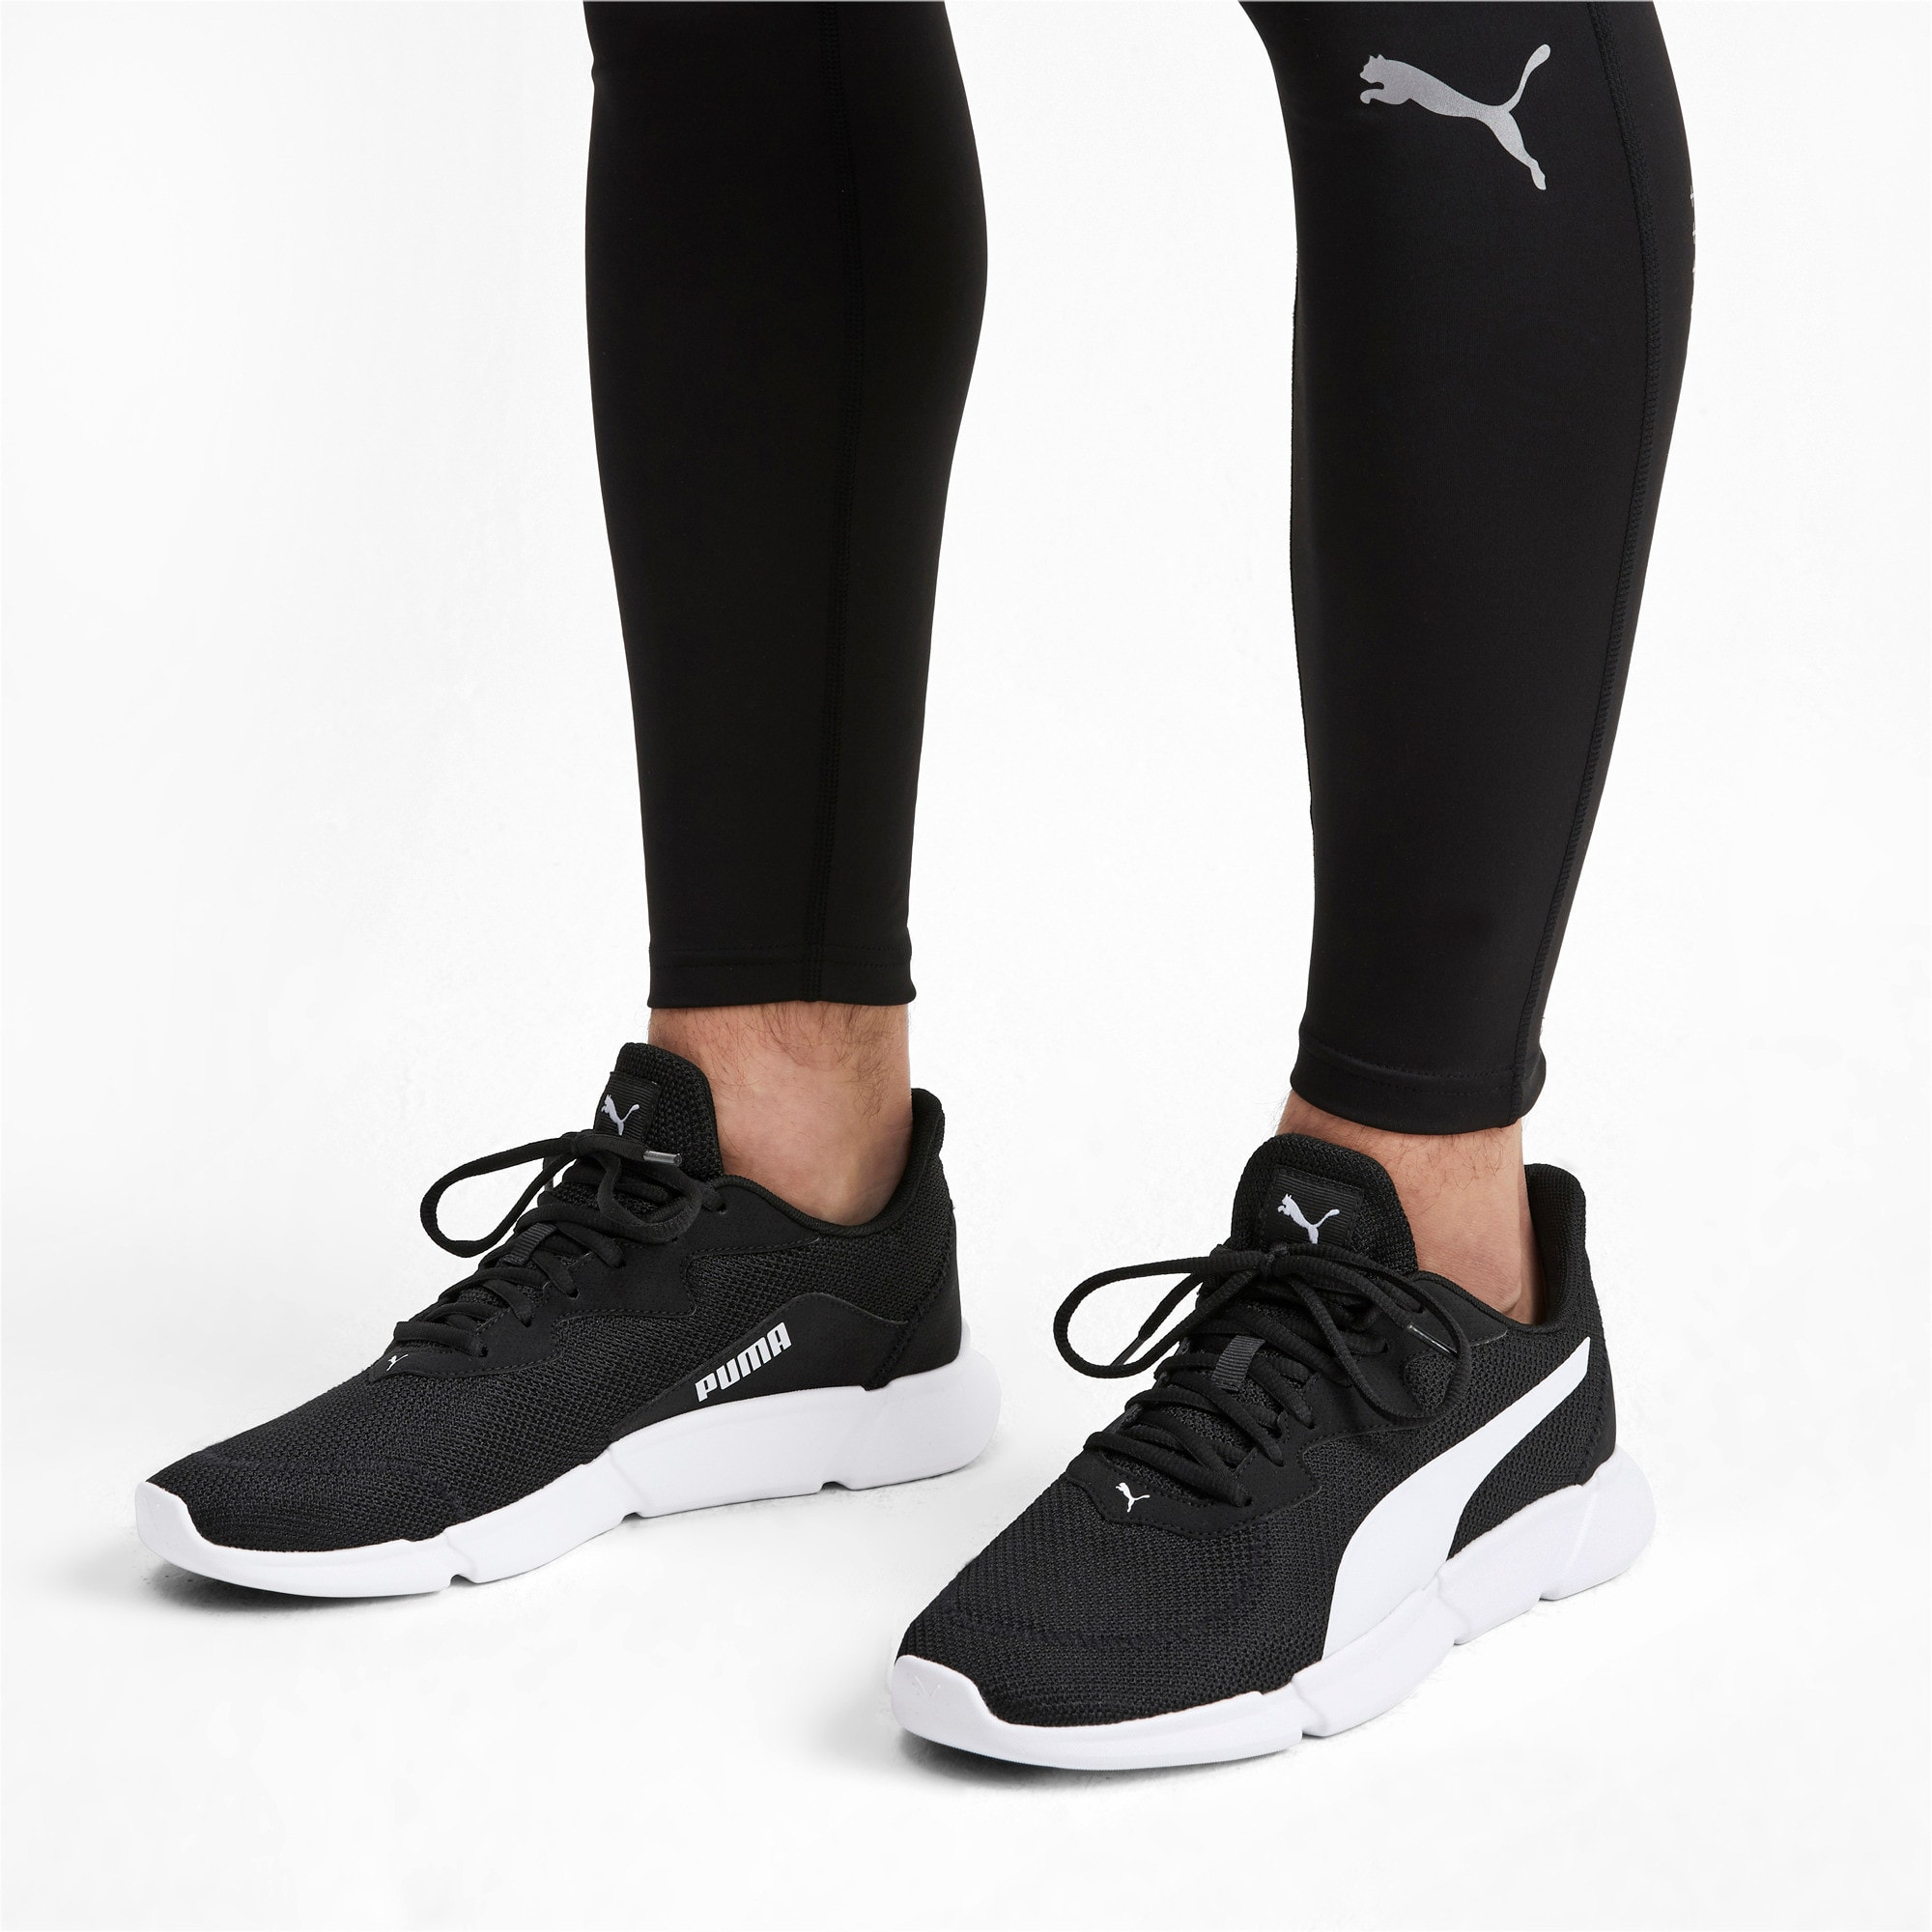 INTERFLEX Running Shoes, Puma Black-Puma White, large-IND